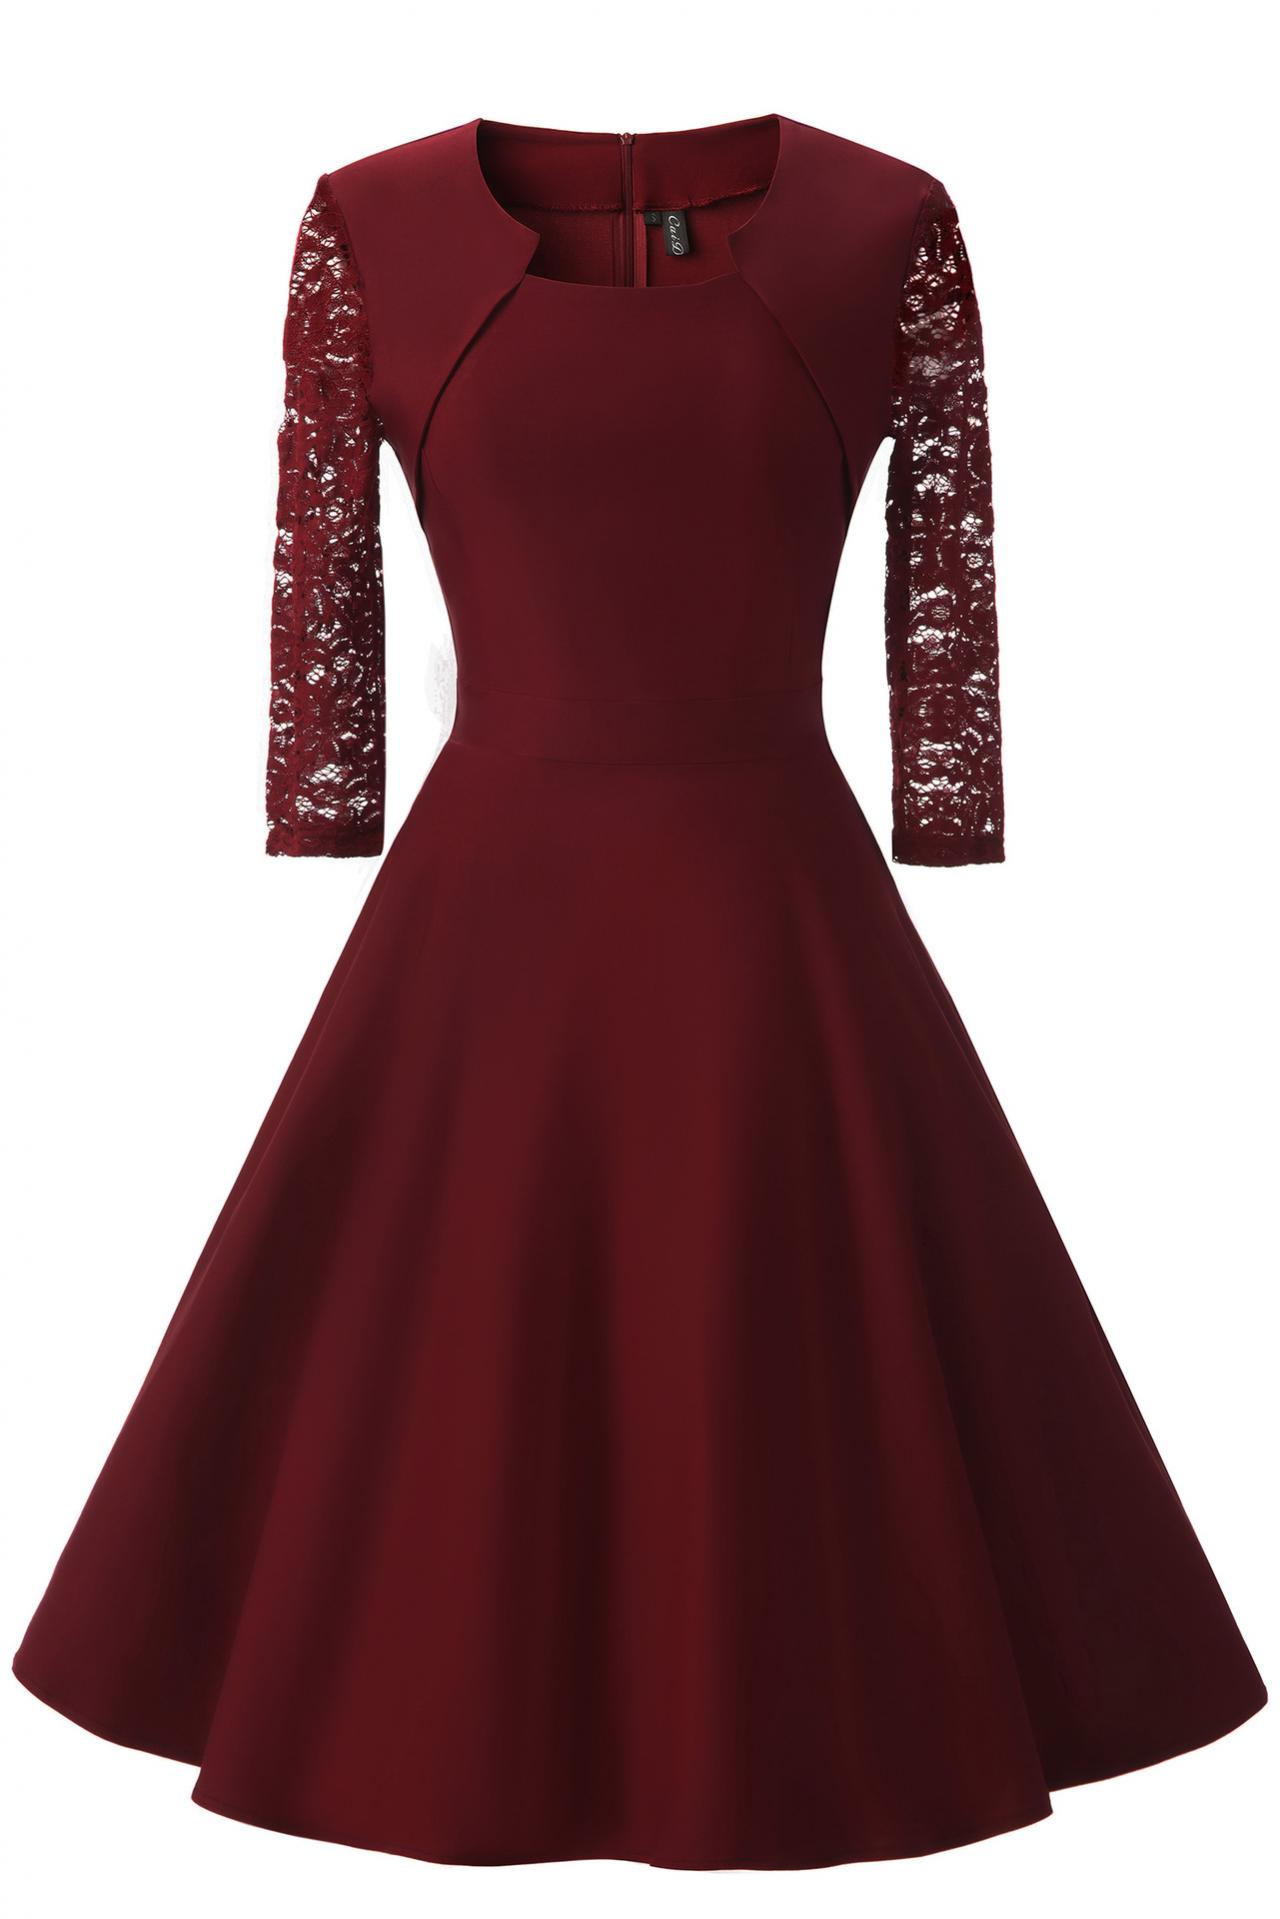 Vintage 50 60s Lace Patchwork Dress Women 3/4 Sleeve Rockabilly Swing Cocktail Prom Party Dress burgundy